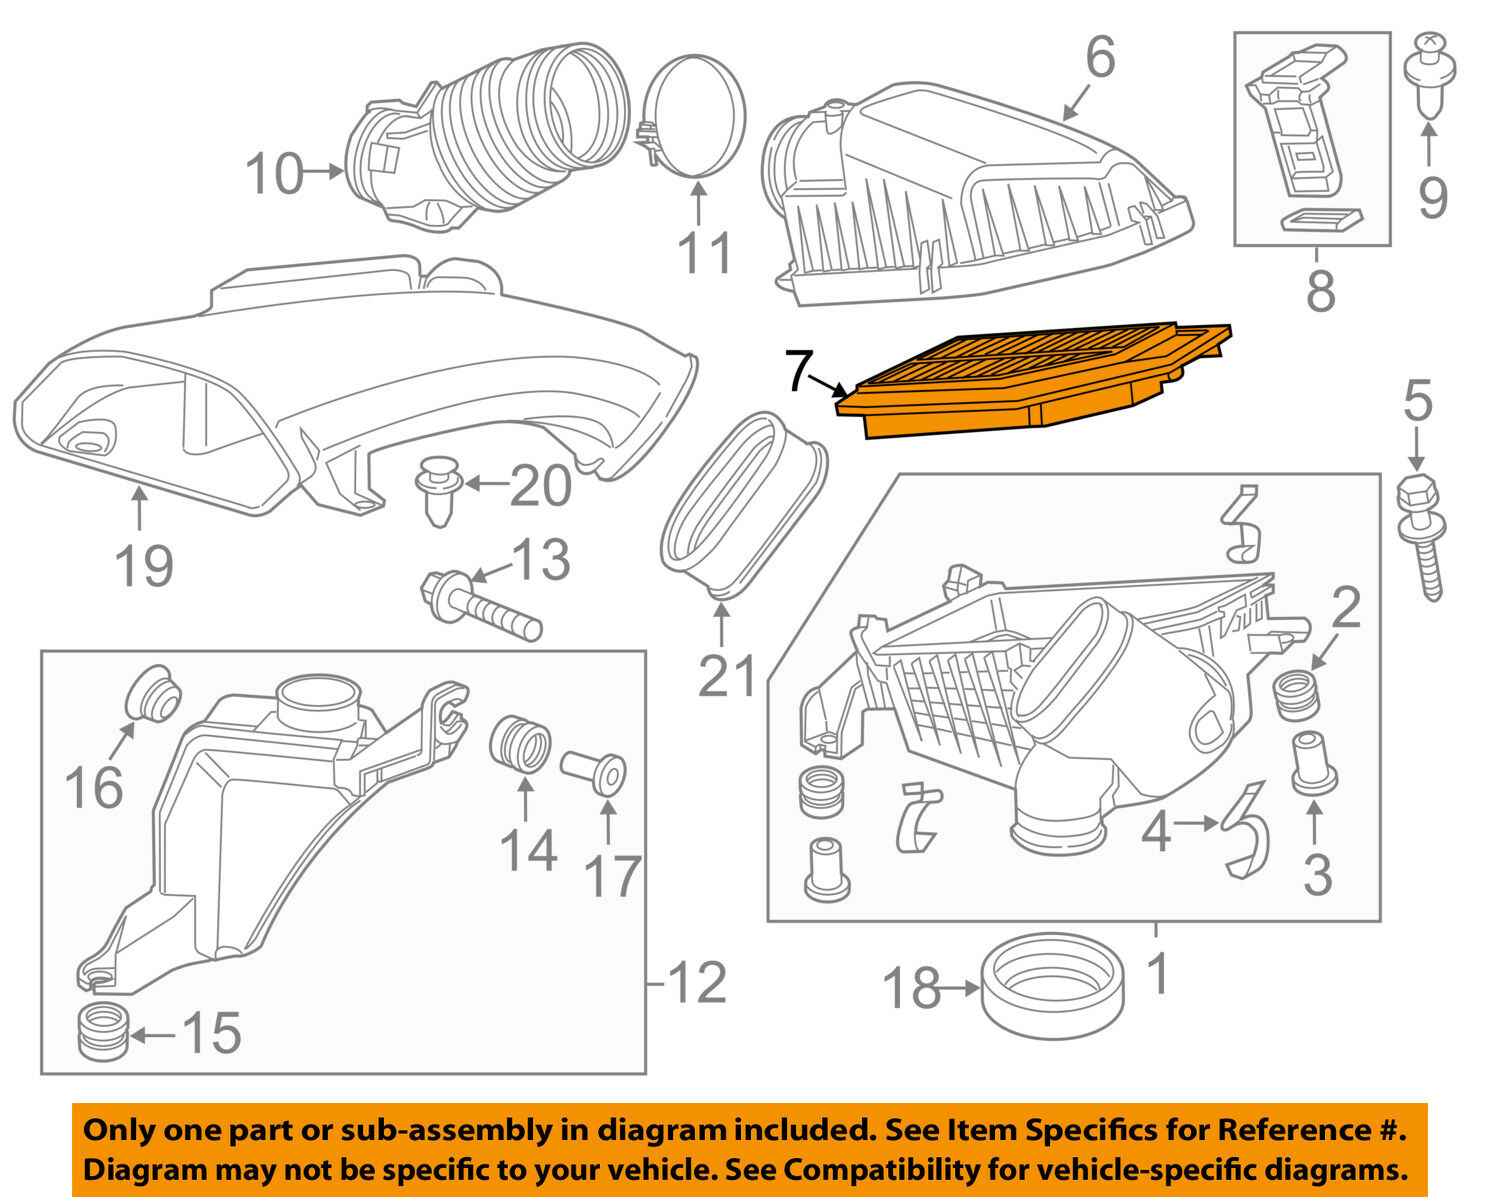 Honda Oem 11 16 Odyssey Engine Air Filter Element 17220rv0a00 2005 Diagram 1 Of 2only 5 Available